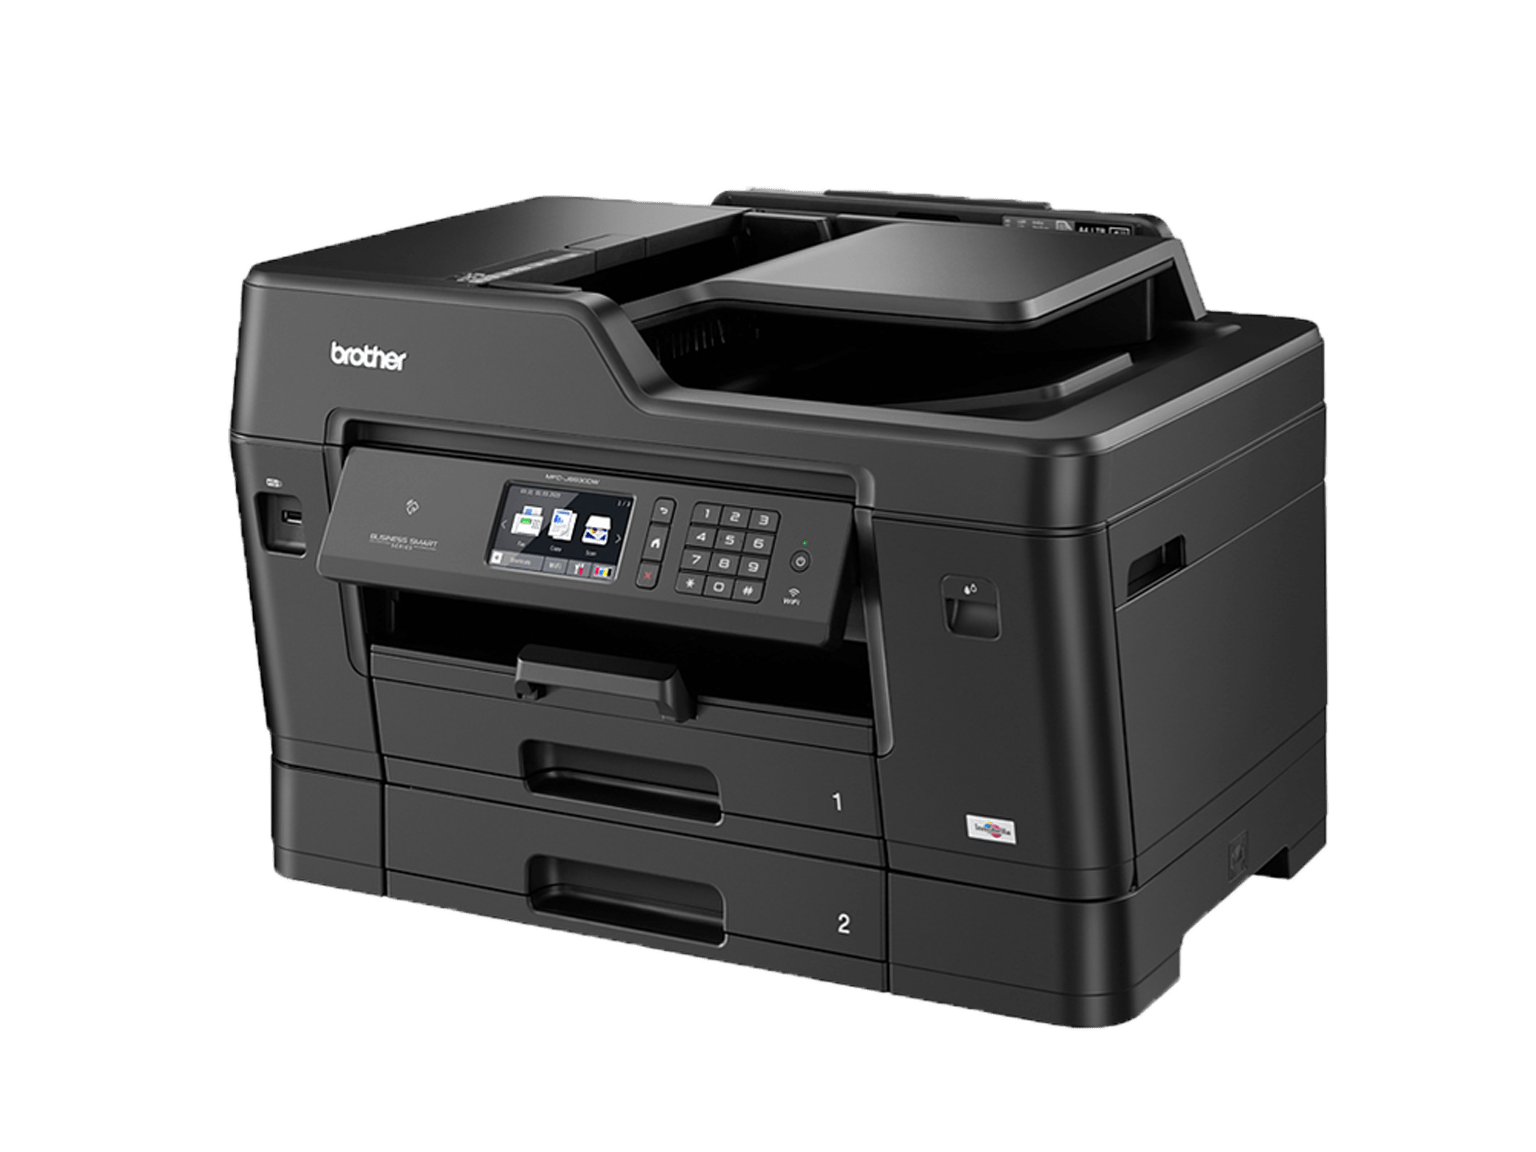 Brother A3 inkjet printer 3/4 view